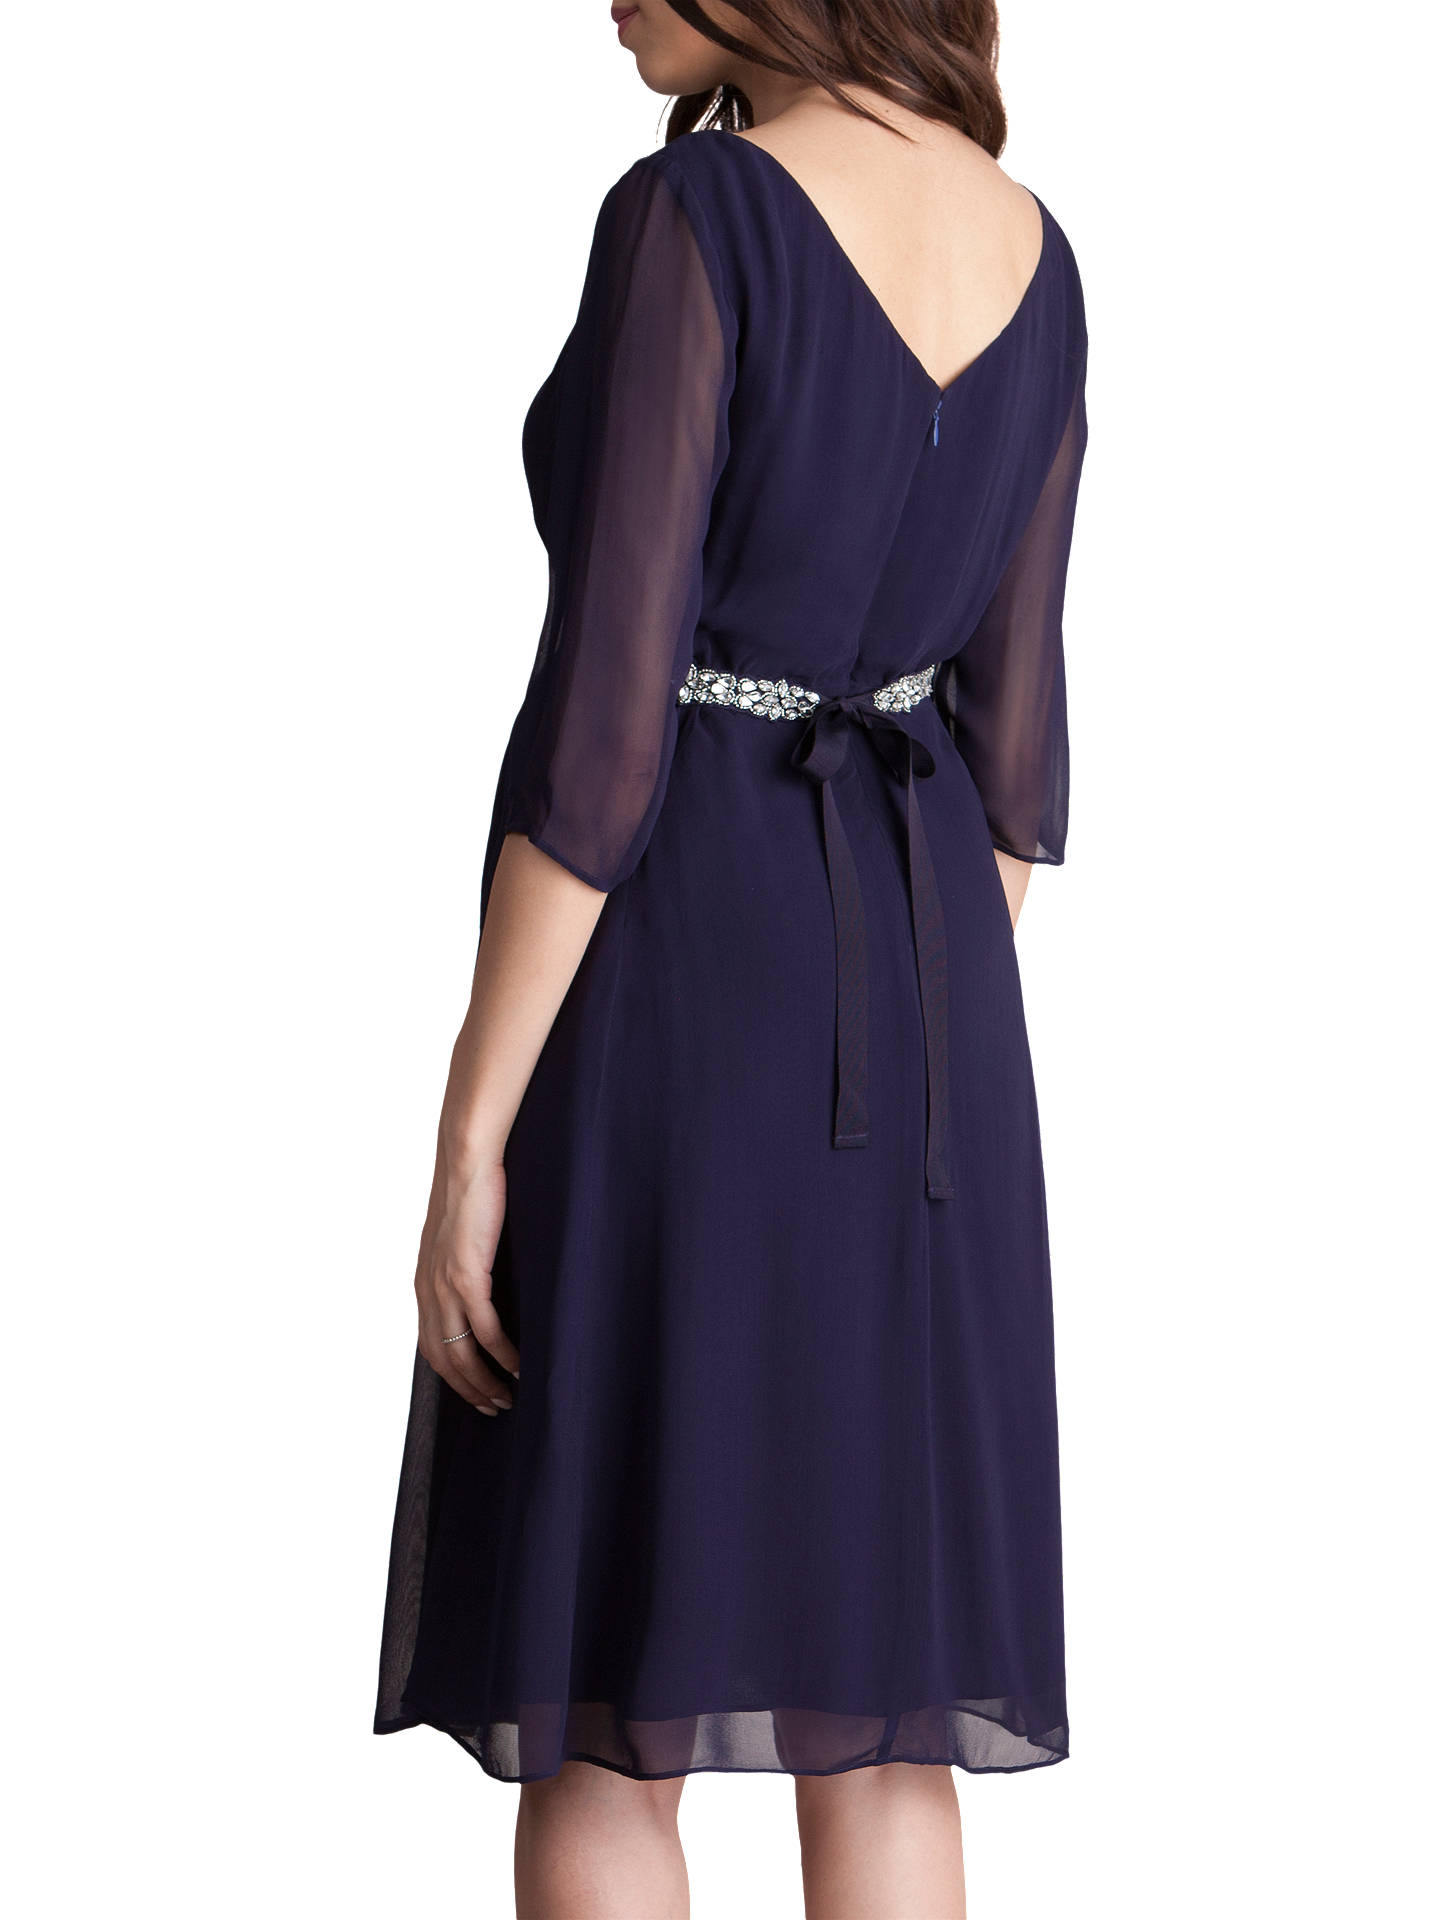 b15dd0a6934 ... Buy Séraphine Luxe Giselle Maternity Dress